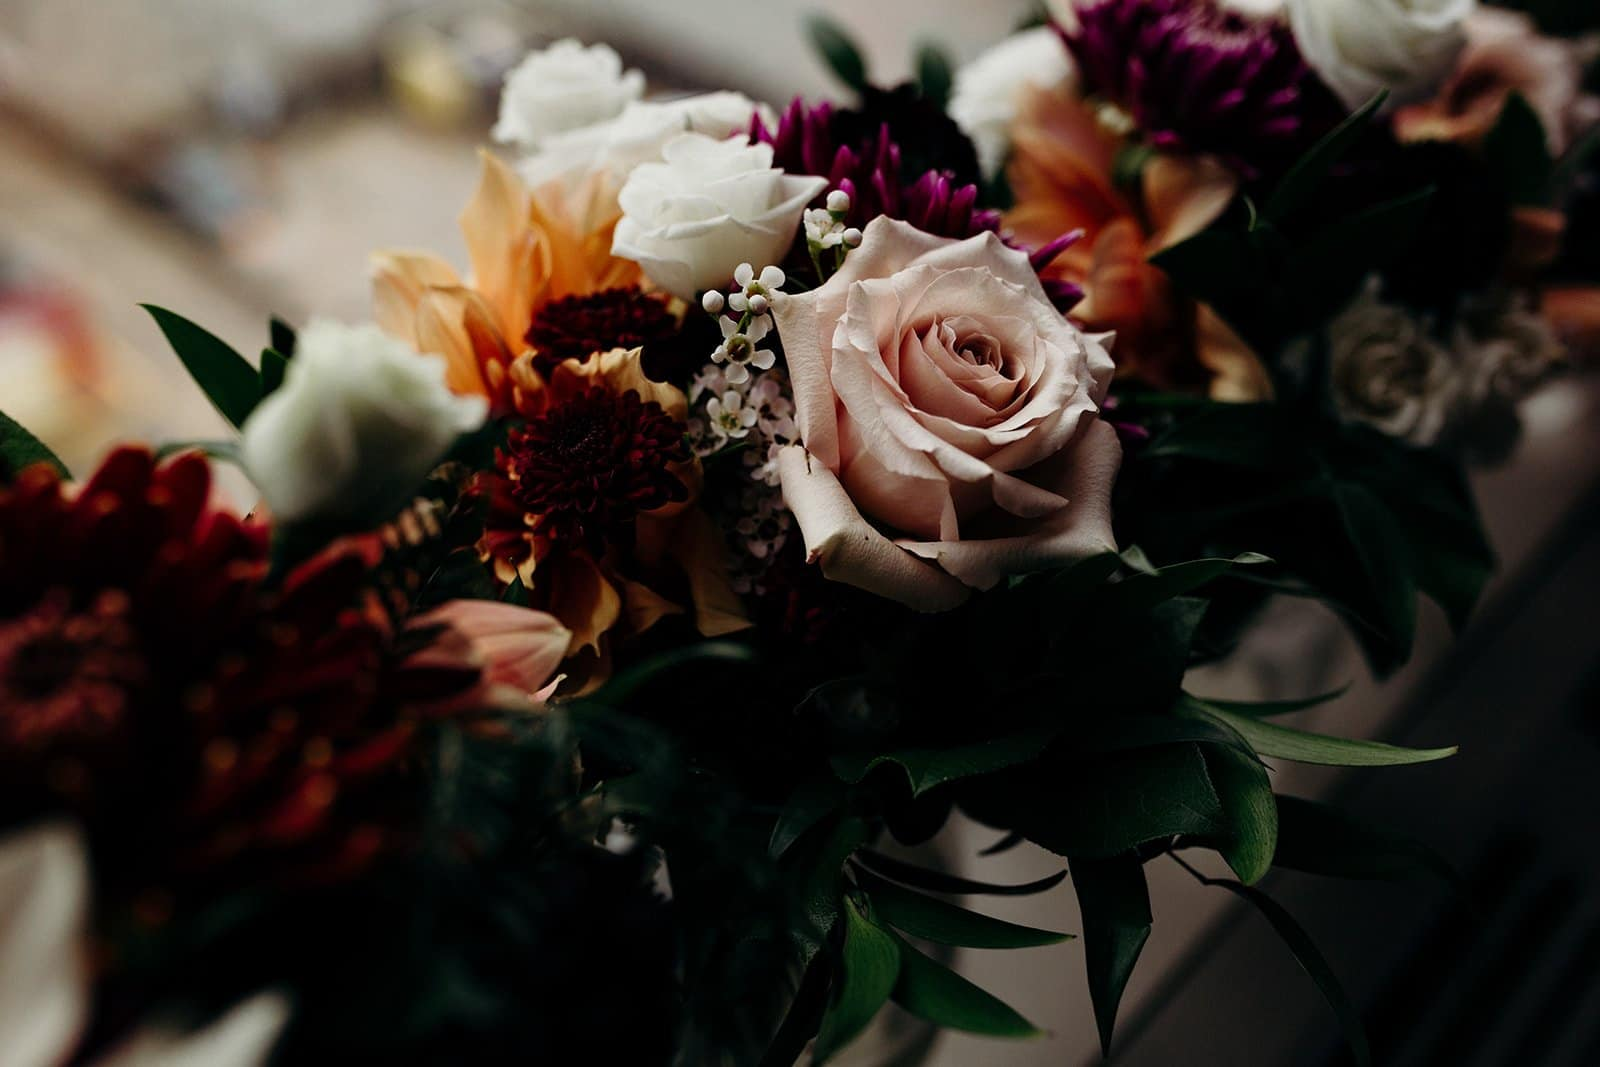 detailed photograph of wedding flowers